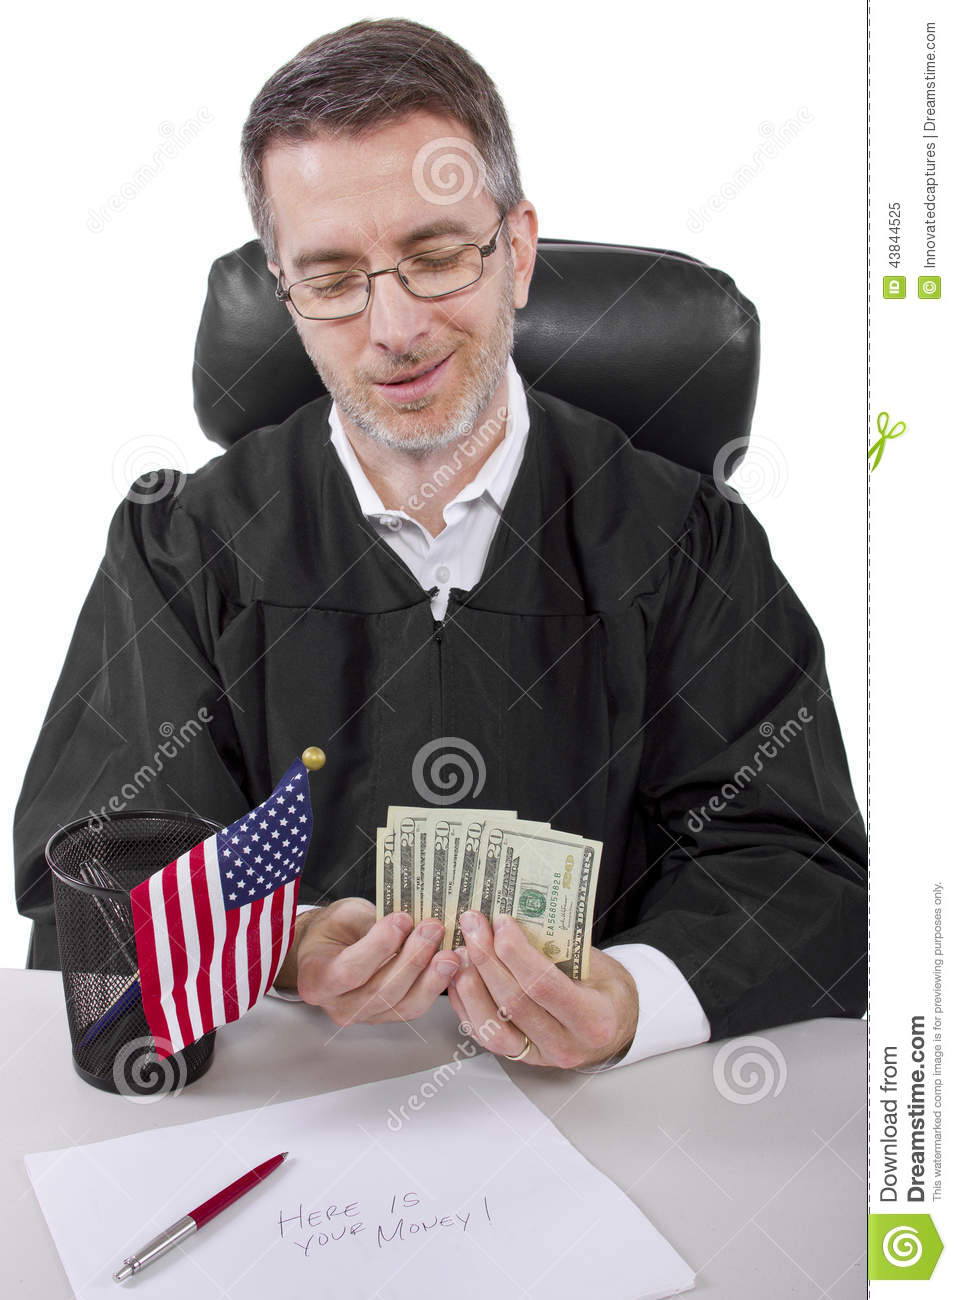 criminal justice: bribery and graft essay Police misconduct introduction  or getting involved in criminal activity  the bribe may be keeping the public from achieving justice and bribery is in no way .